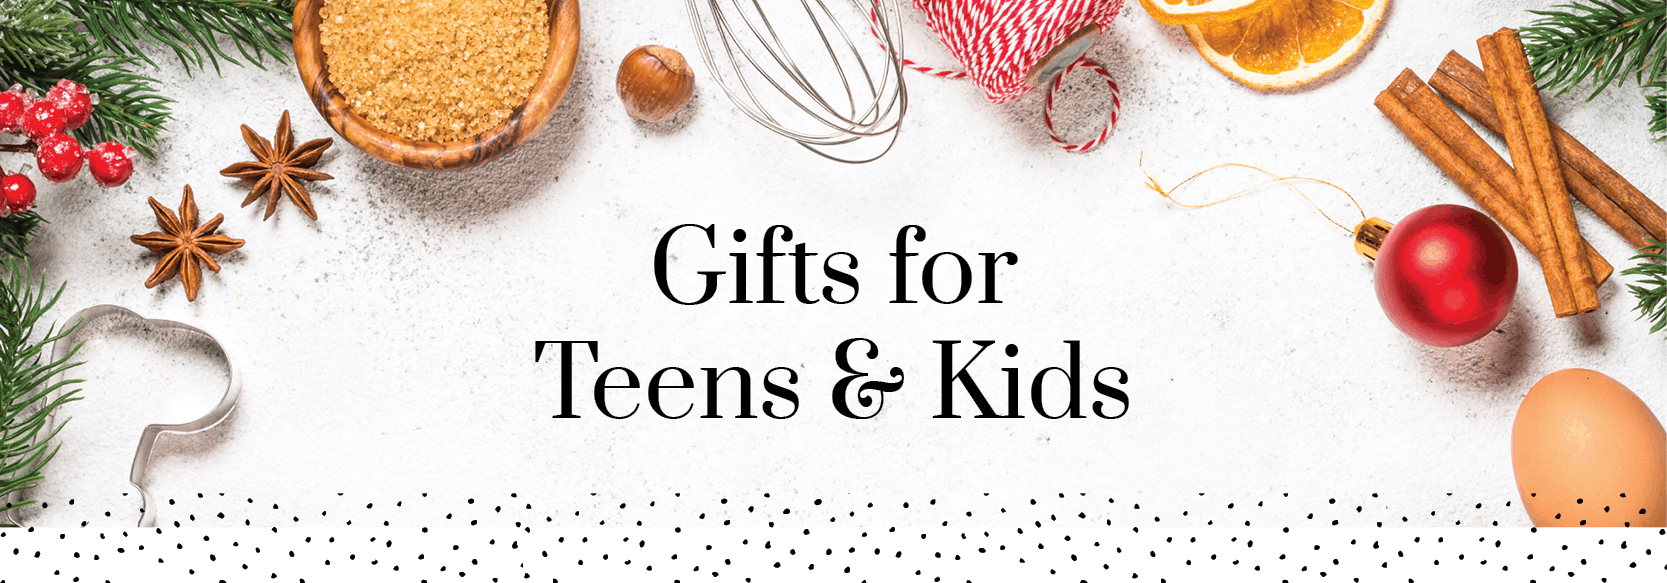 Gifts for Teens & Kids